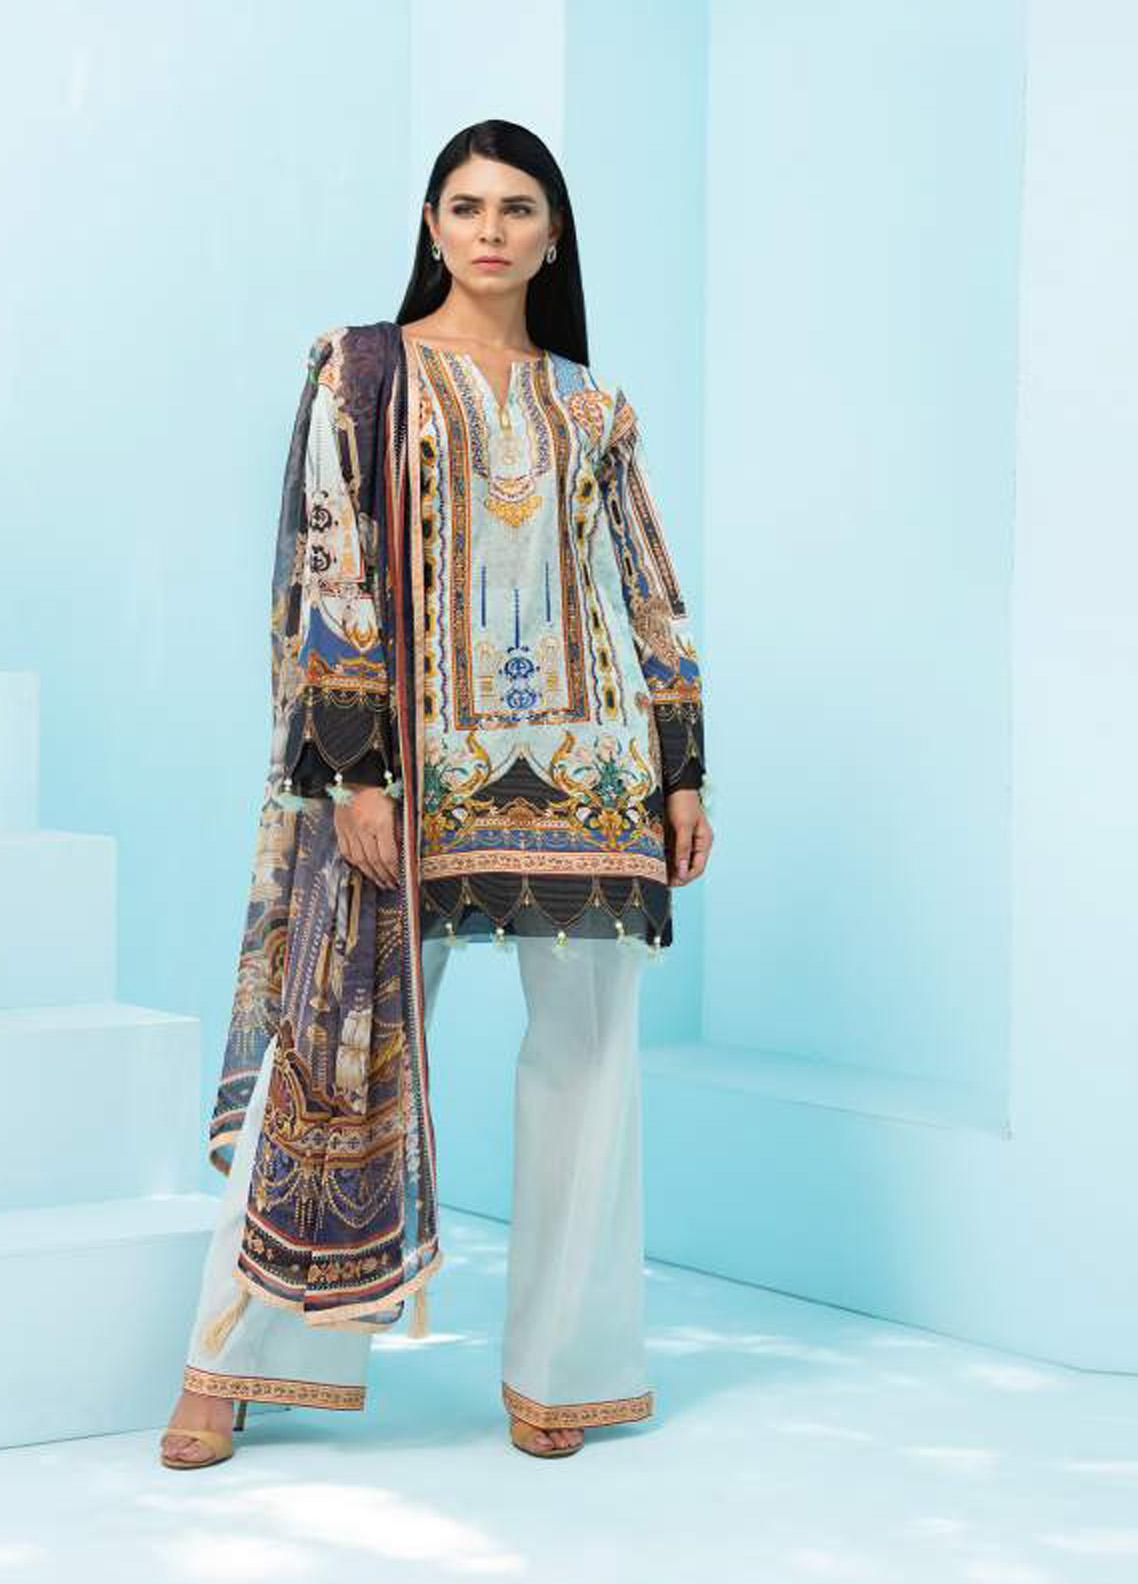 Florence by Rang Rasiya Embroidered Lawn Unstitched 3 Piece Suit RR20SF F538 - Spring / Summer Collection